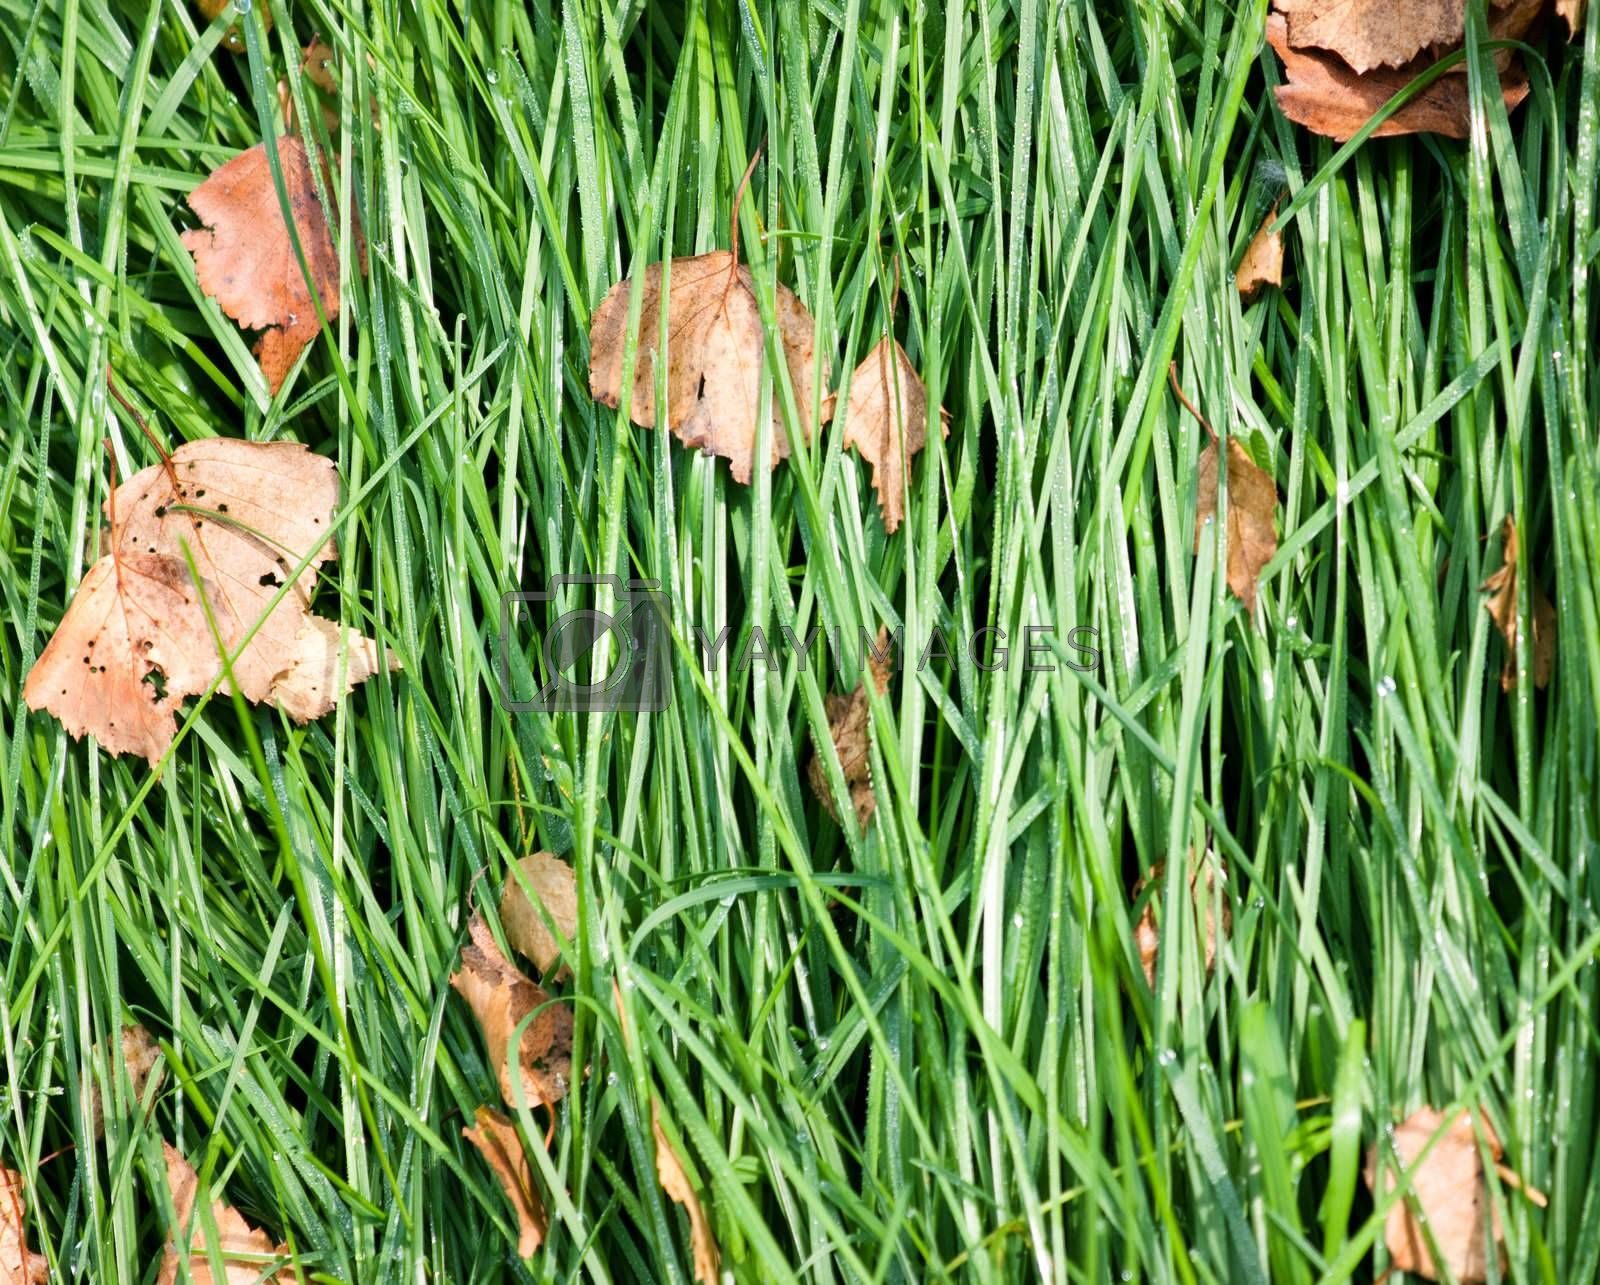 Laid grass with fallen leaves in the autumn